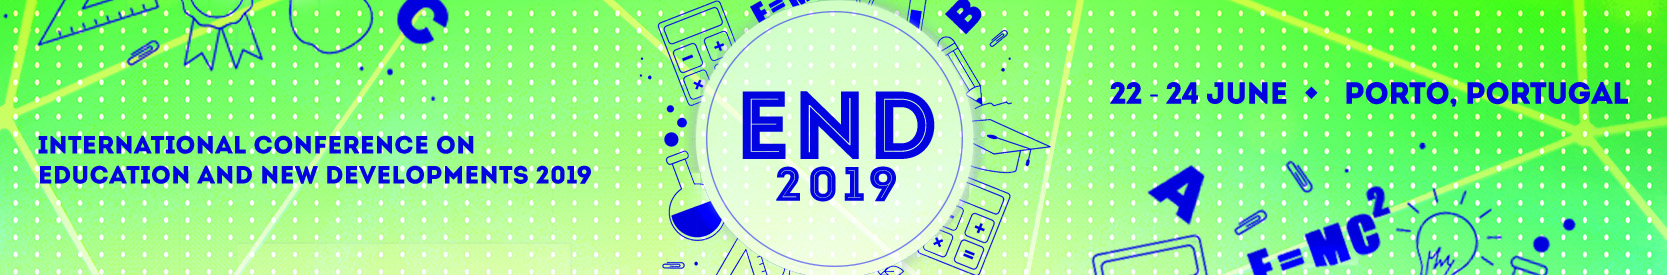 END 2019 | International Conference on Education and New Developments